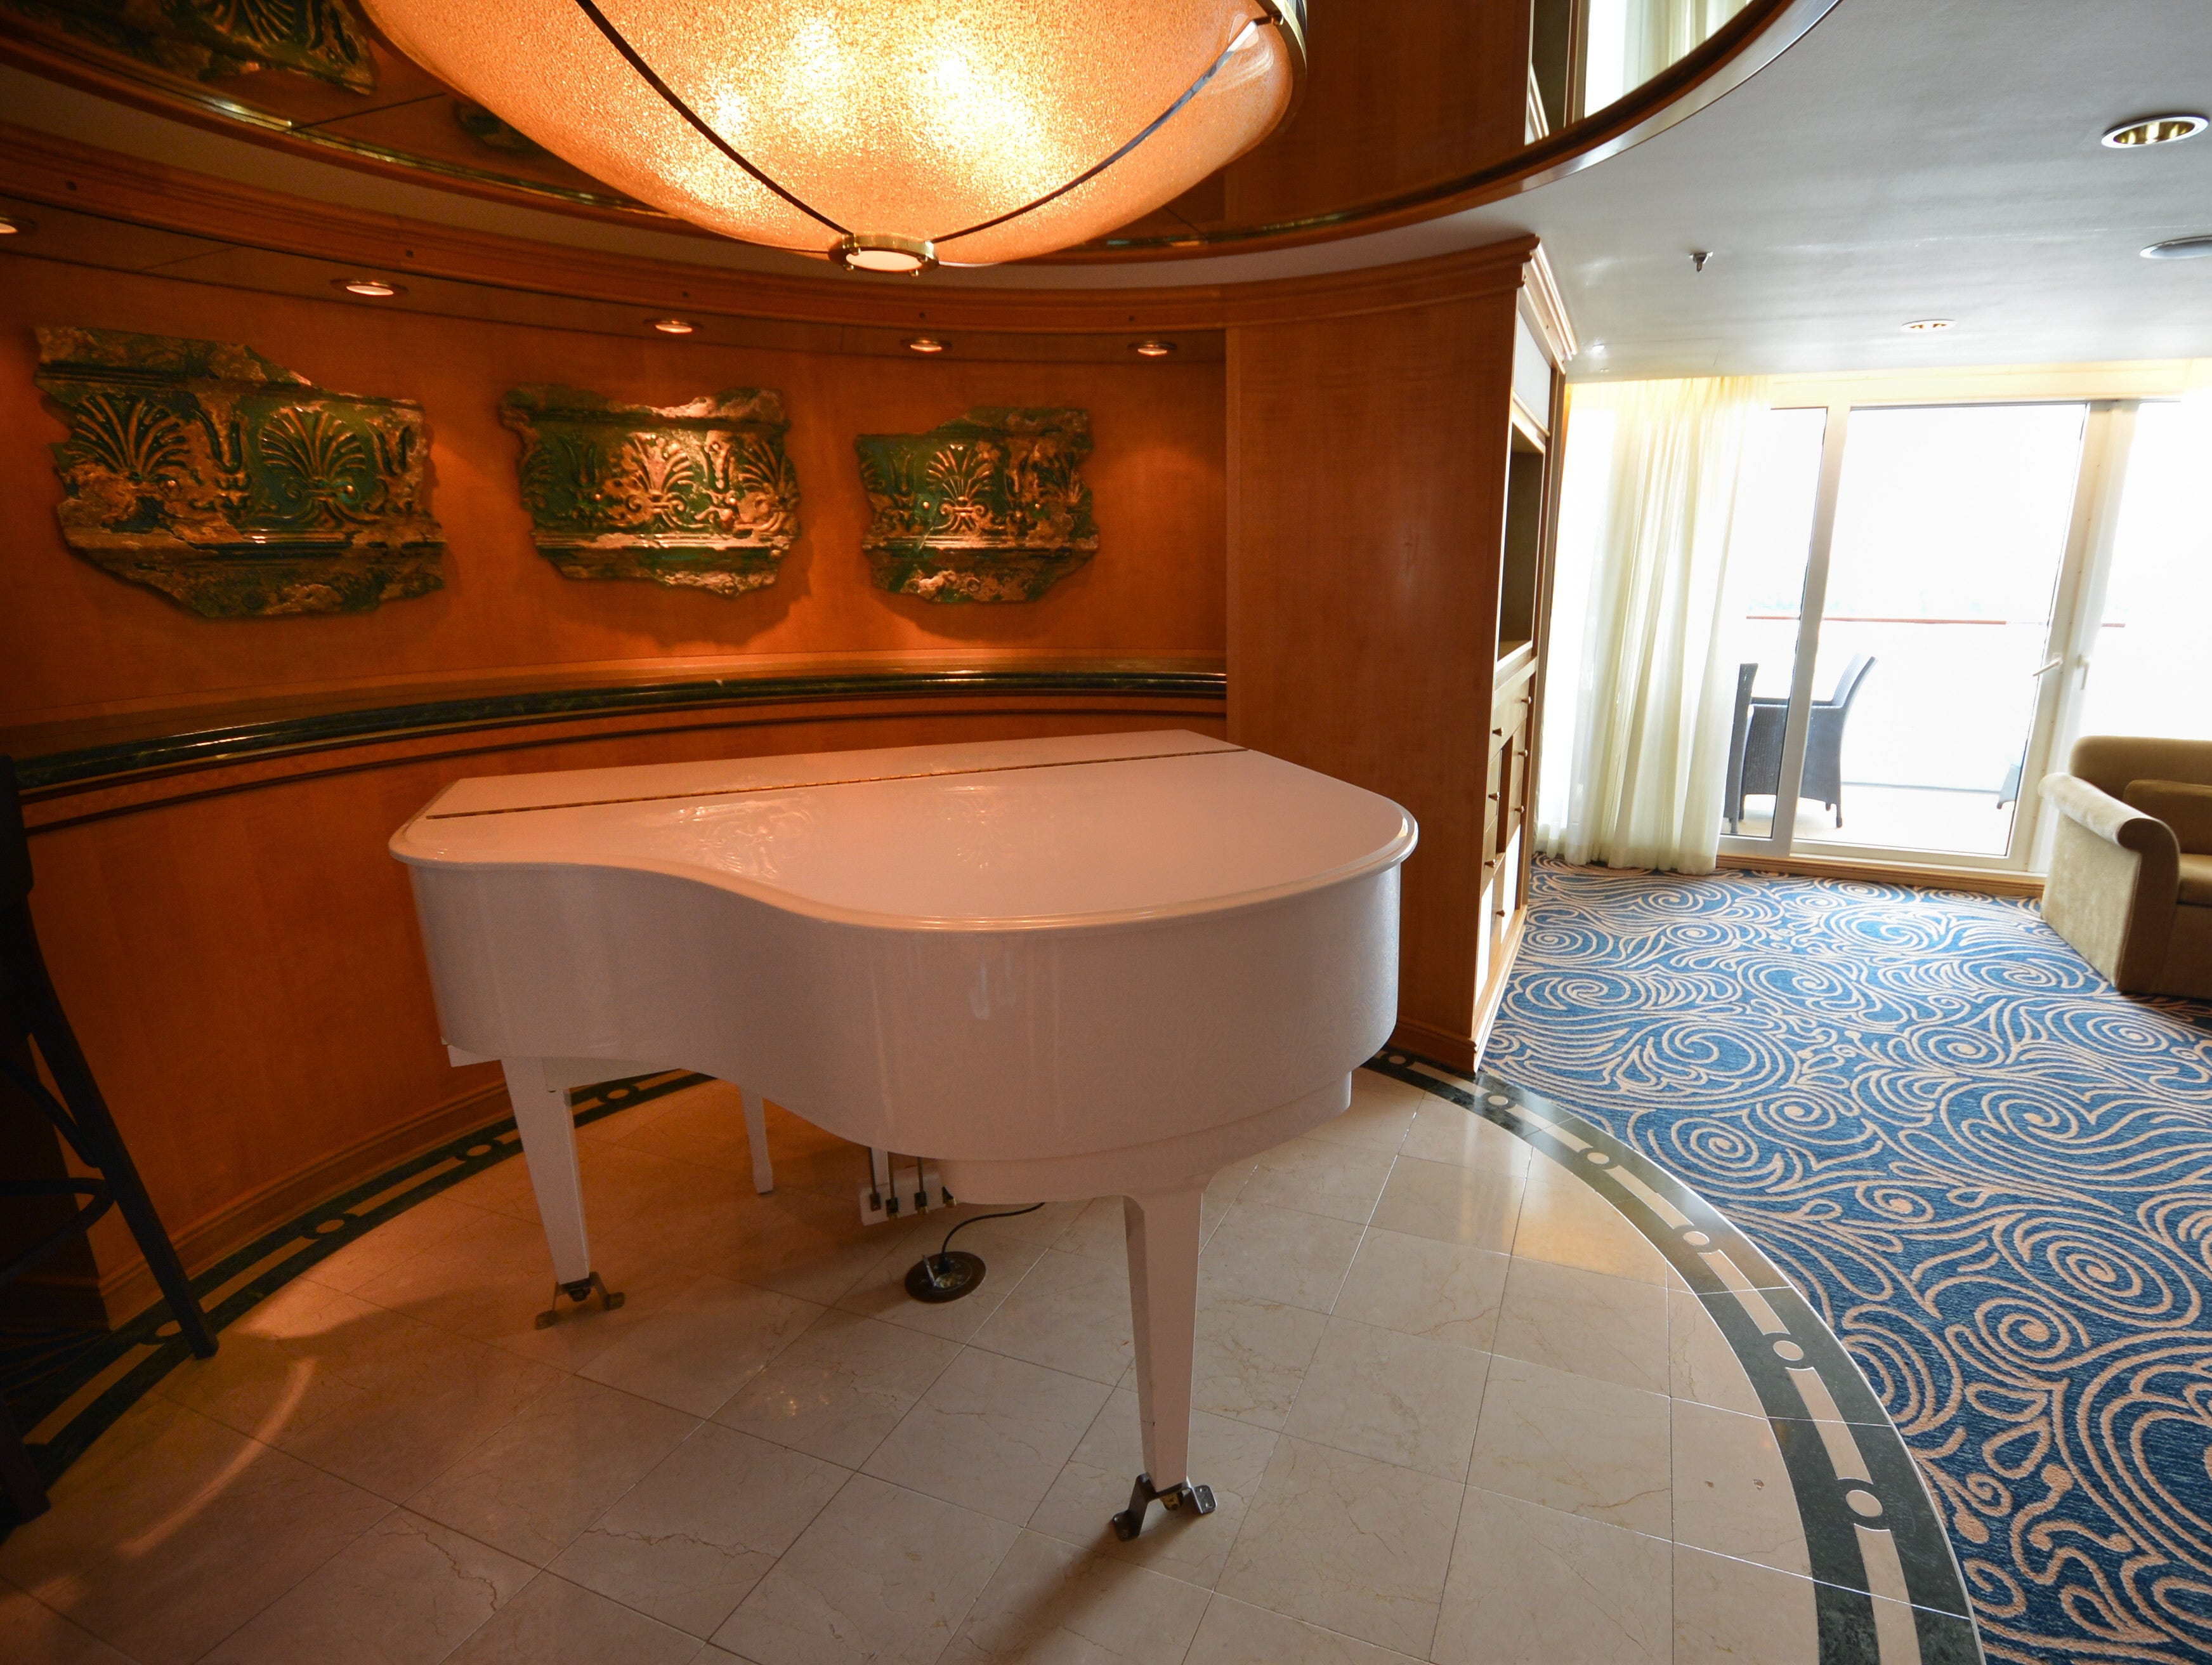 A baby grand piano is another feature of the Royal Suite.